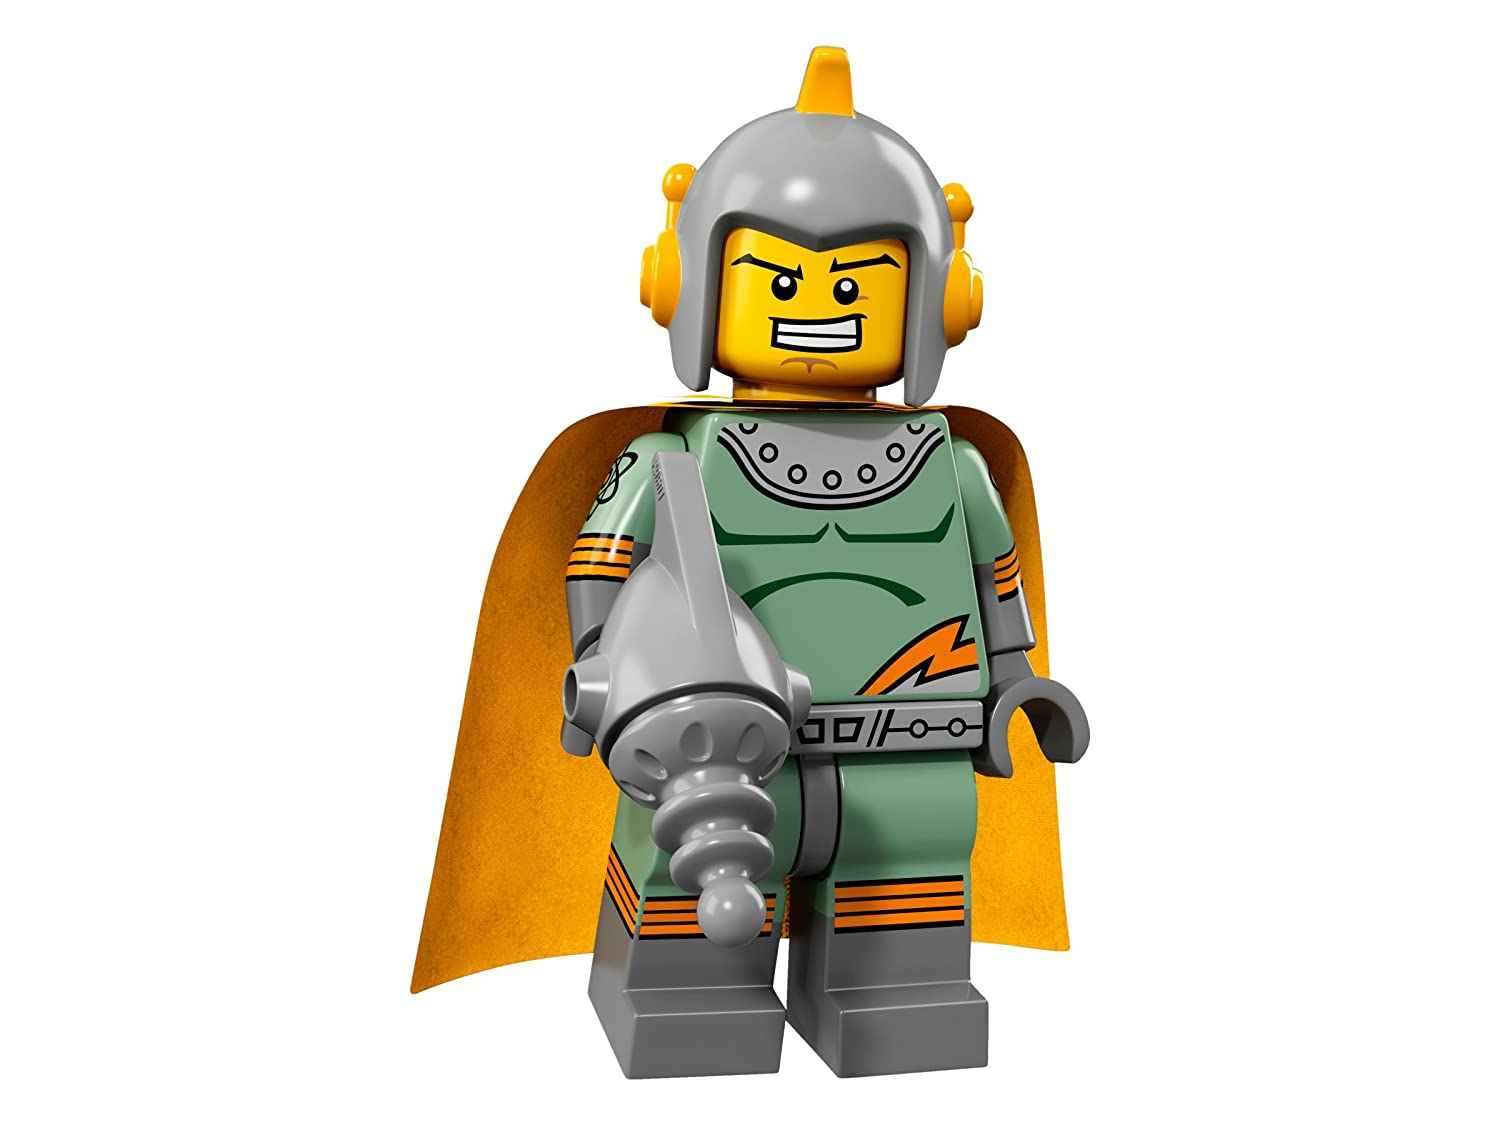 LEGO NEW SERIES 17 STRONG MAN MINIFIG MINIFIGURE 71018